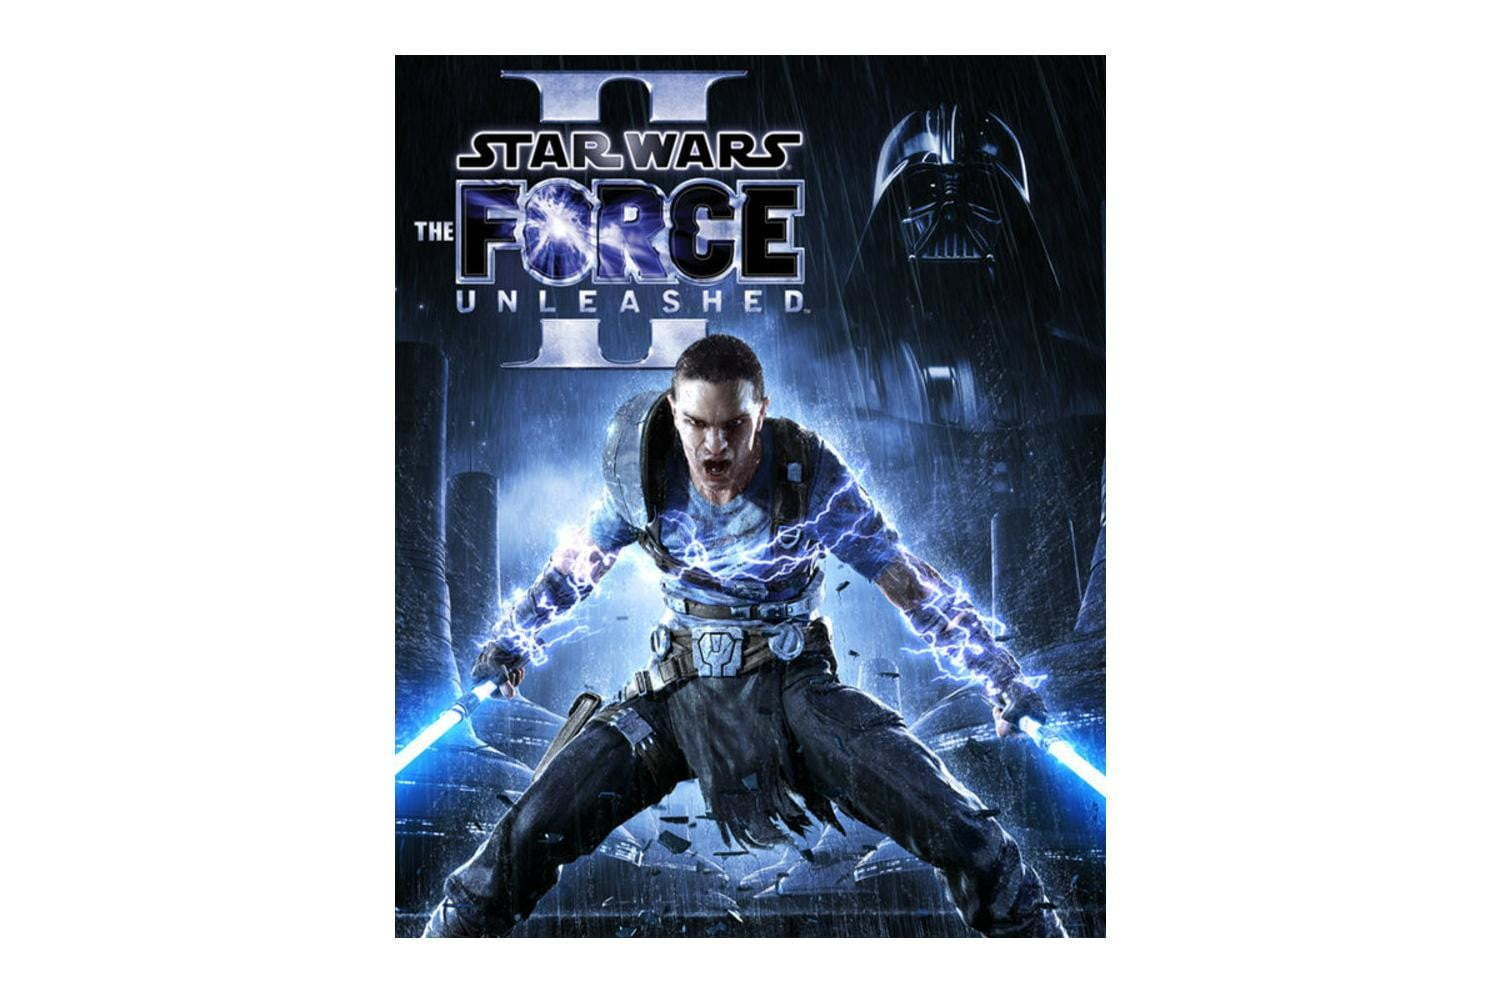 Star-Wars-the-force-unleashed-2-cover-art